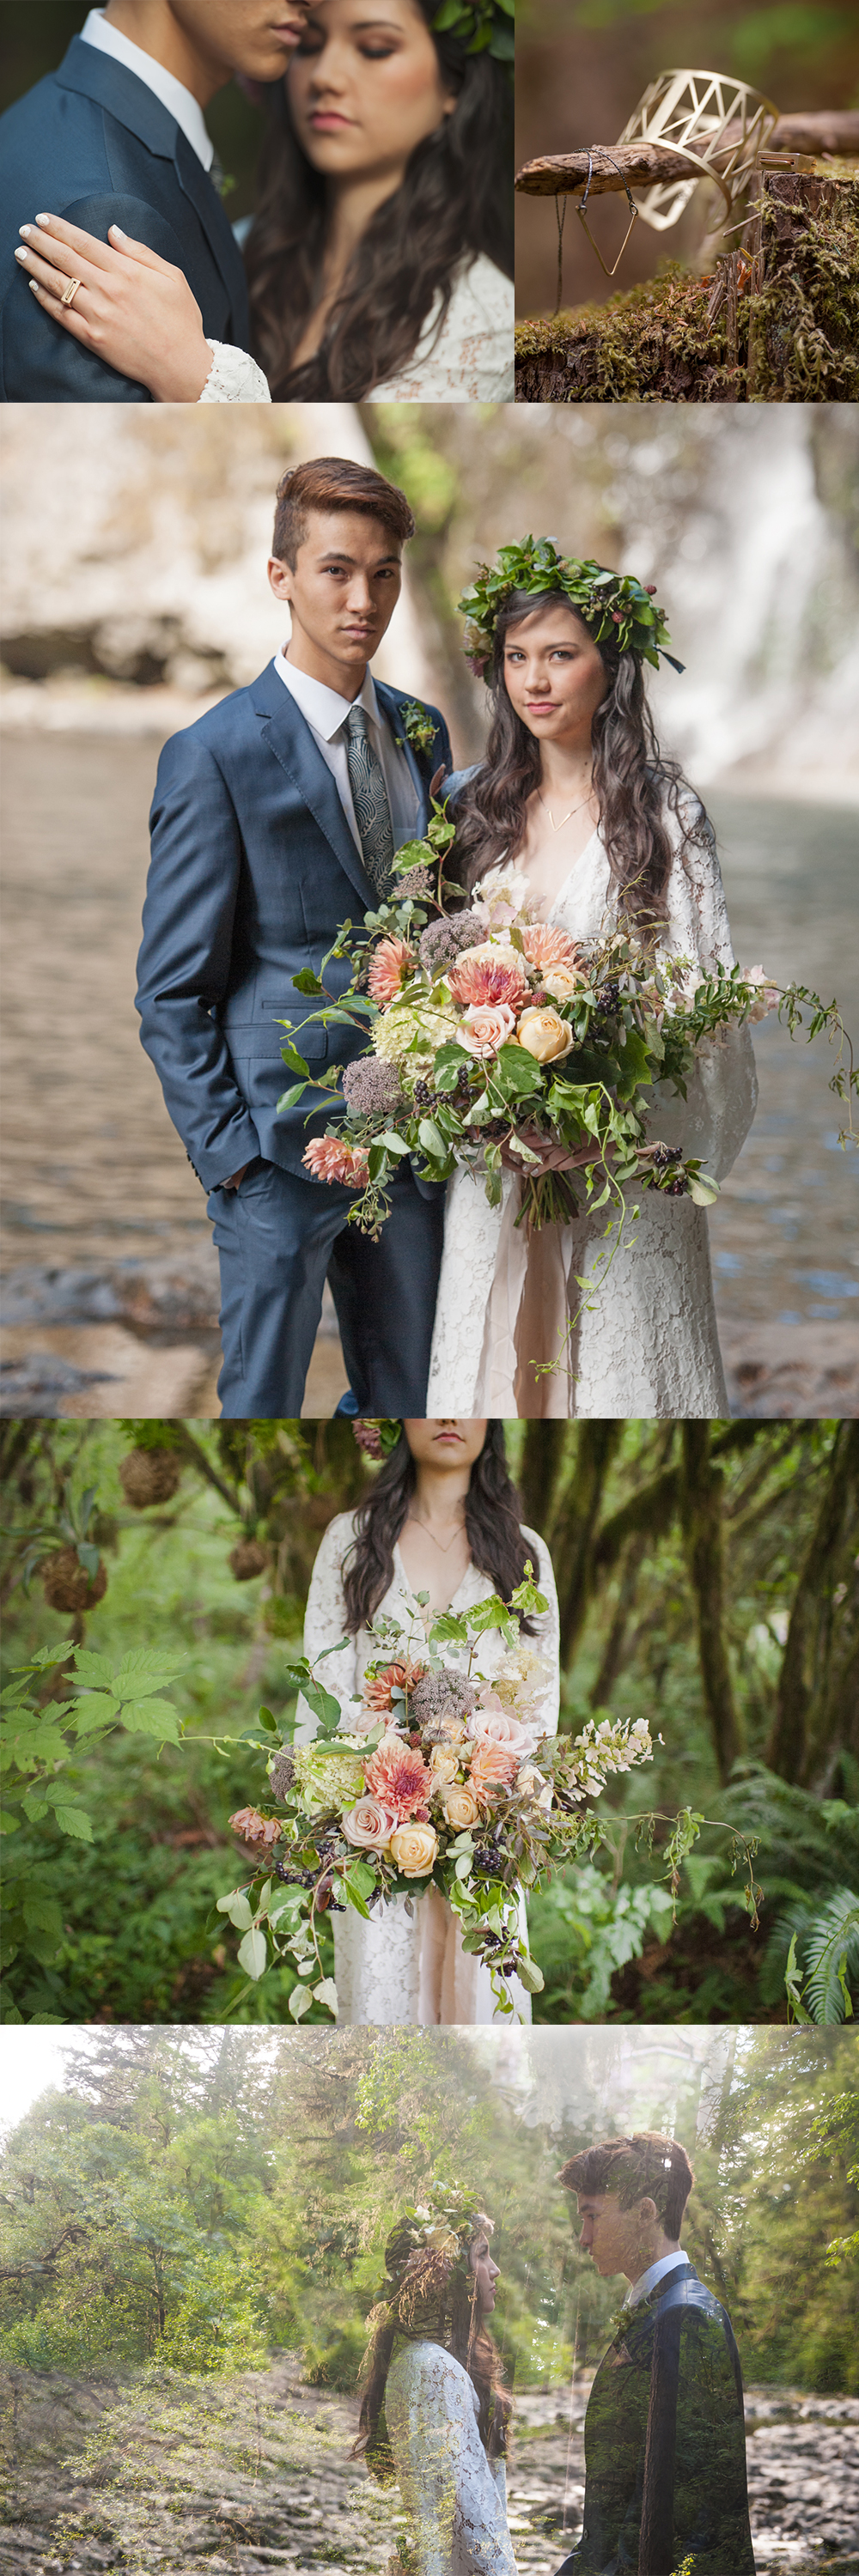 Kimi-Photography-Wedding-Photography-bridal-picture-Portland-Oregon-japanese-photographer1